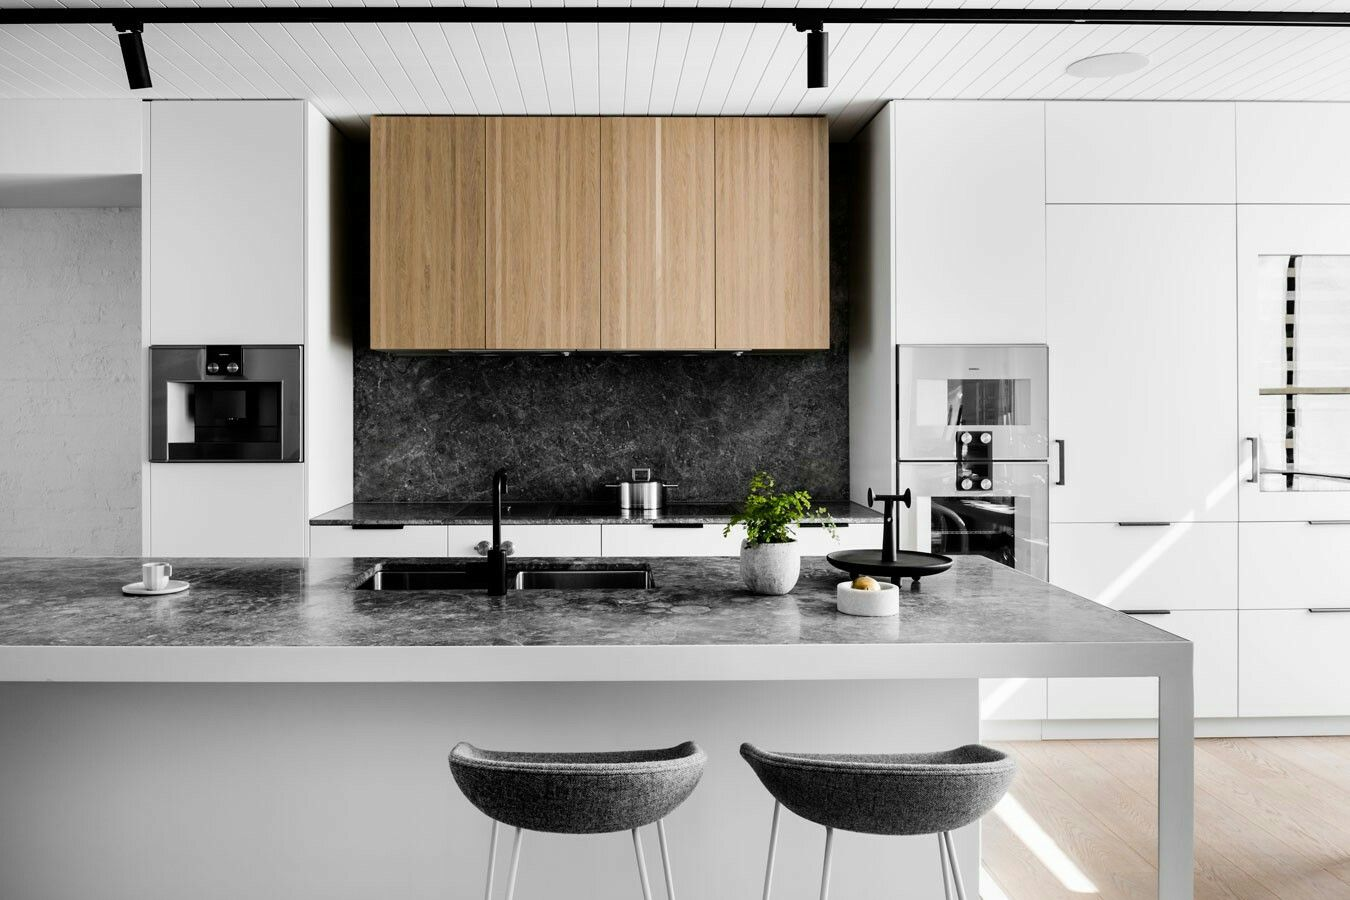 Kitchen Ideas Melbourne pinjess lawson on kitchen | pinterest | interior design